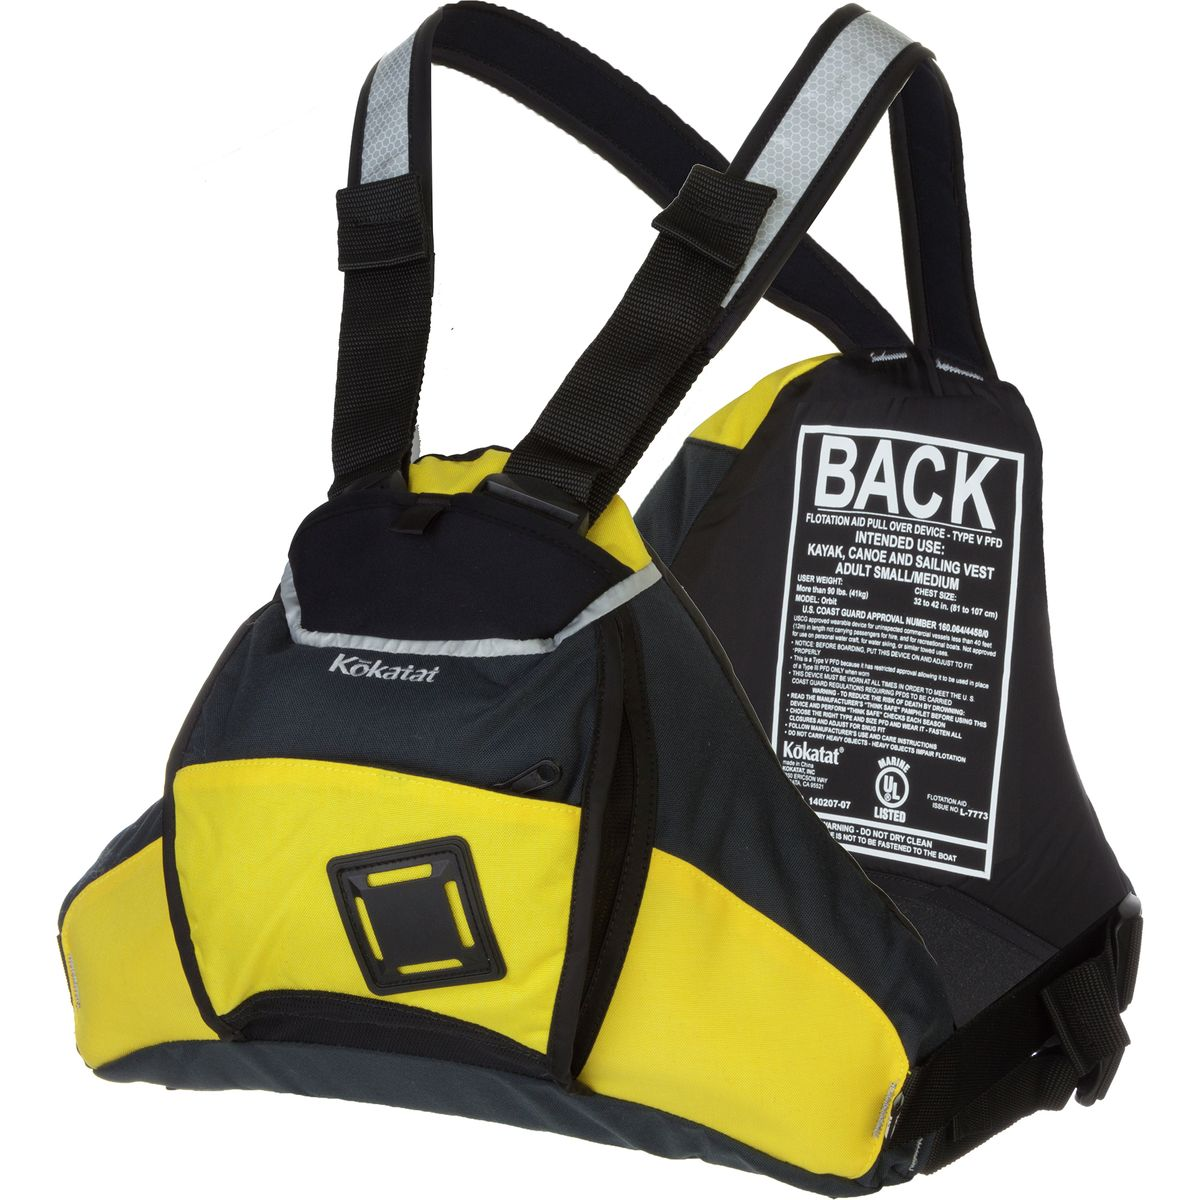 photo: Kokatat Orbit Tour life jacket/pfd